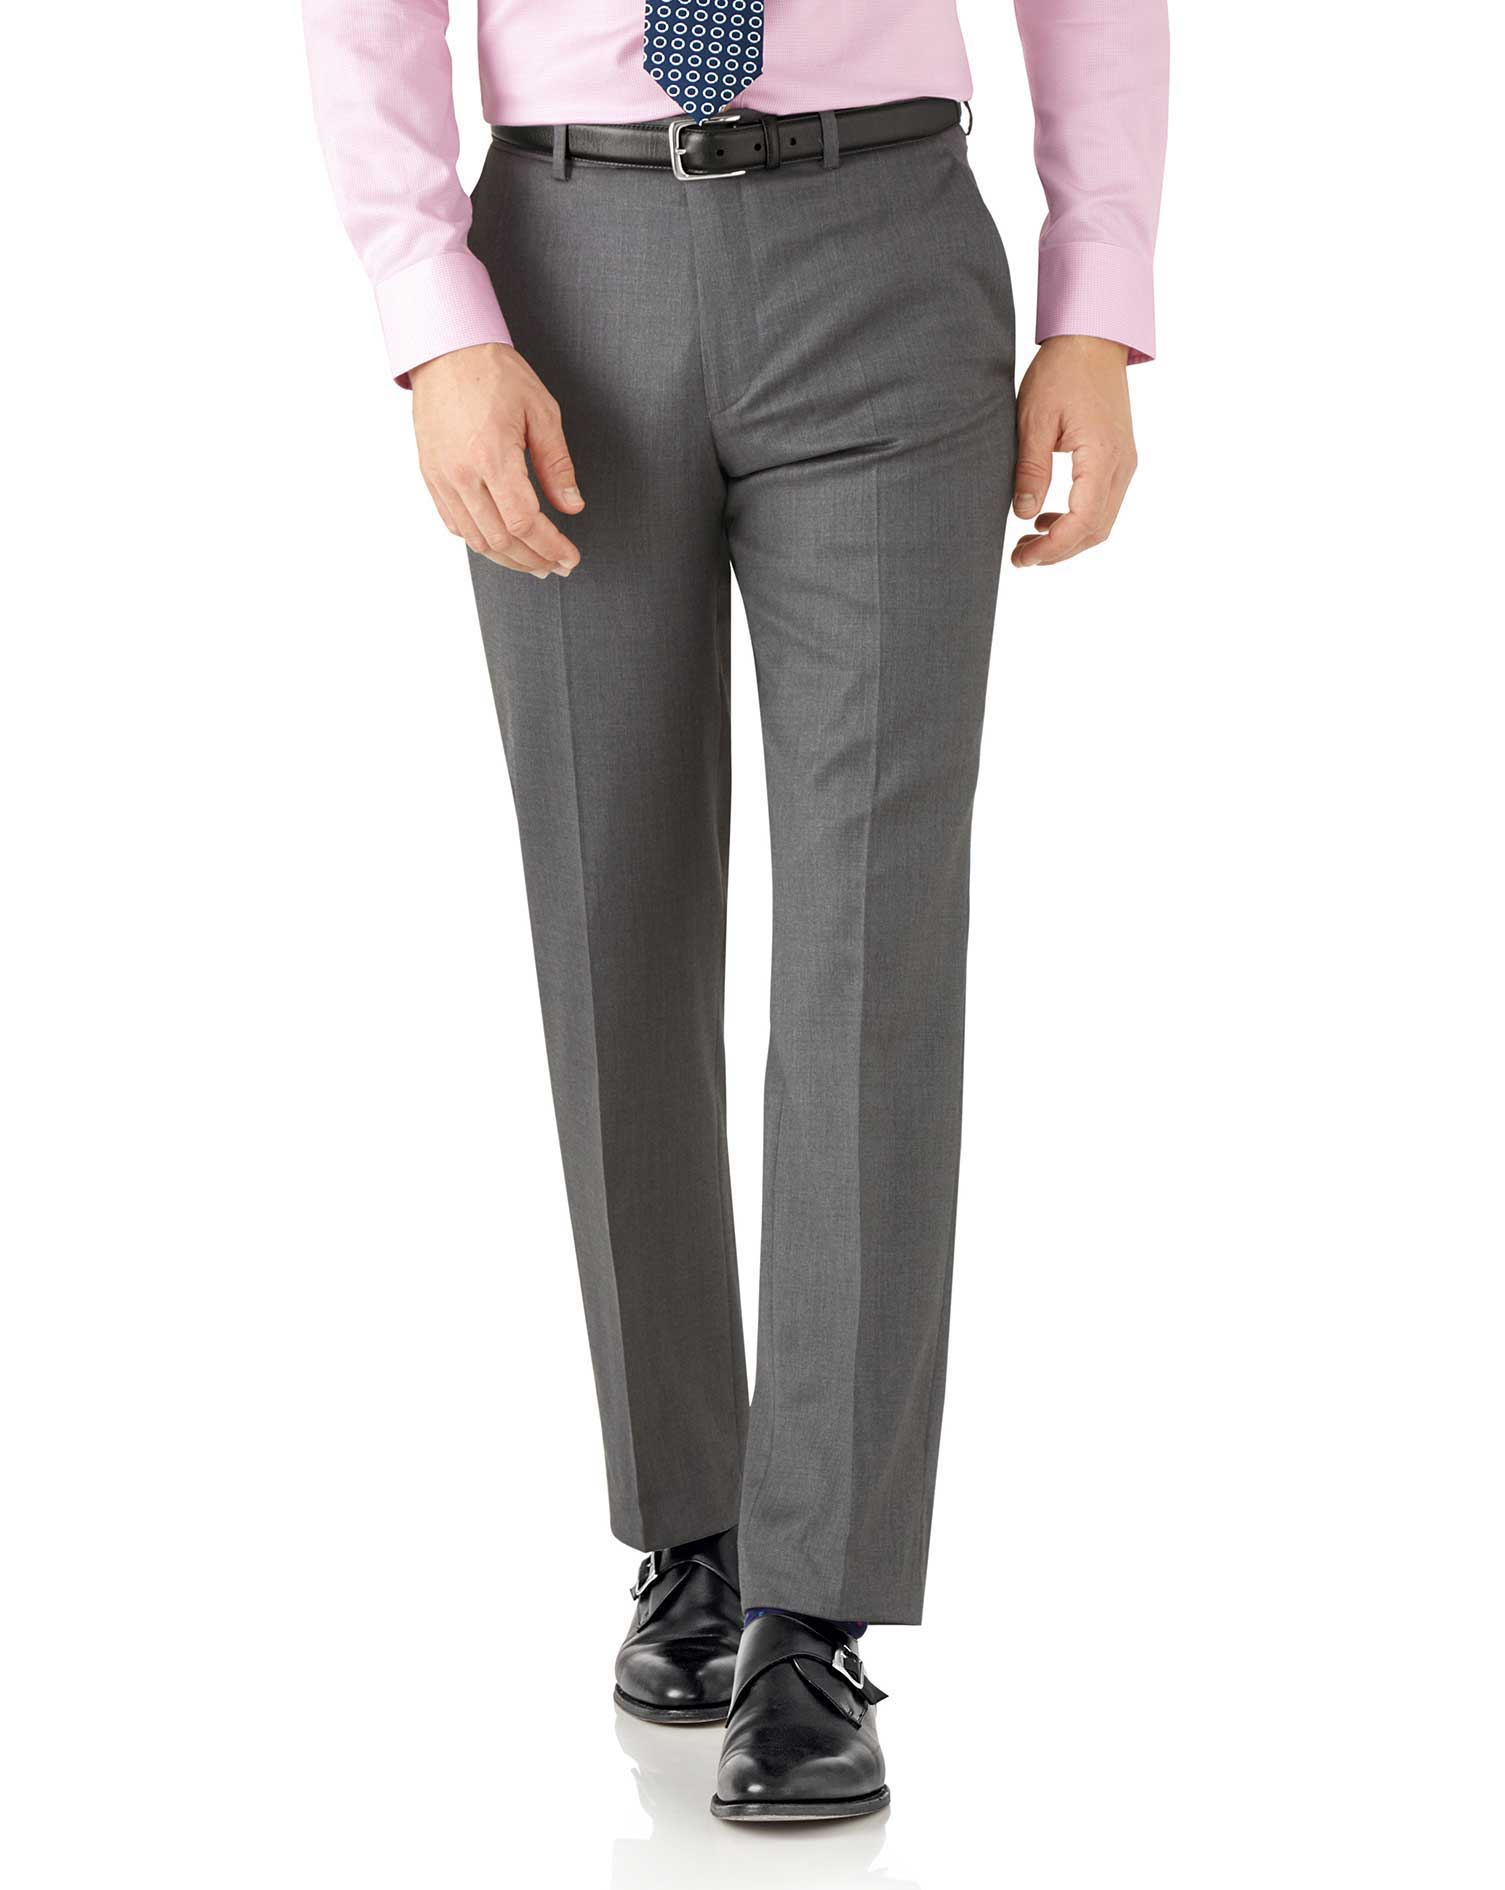 Grey Classic Fit Italian Suit Trousers Size W32 L32 by Charles Tyrwhitt